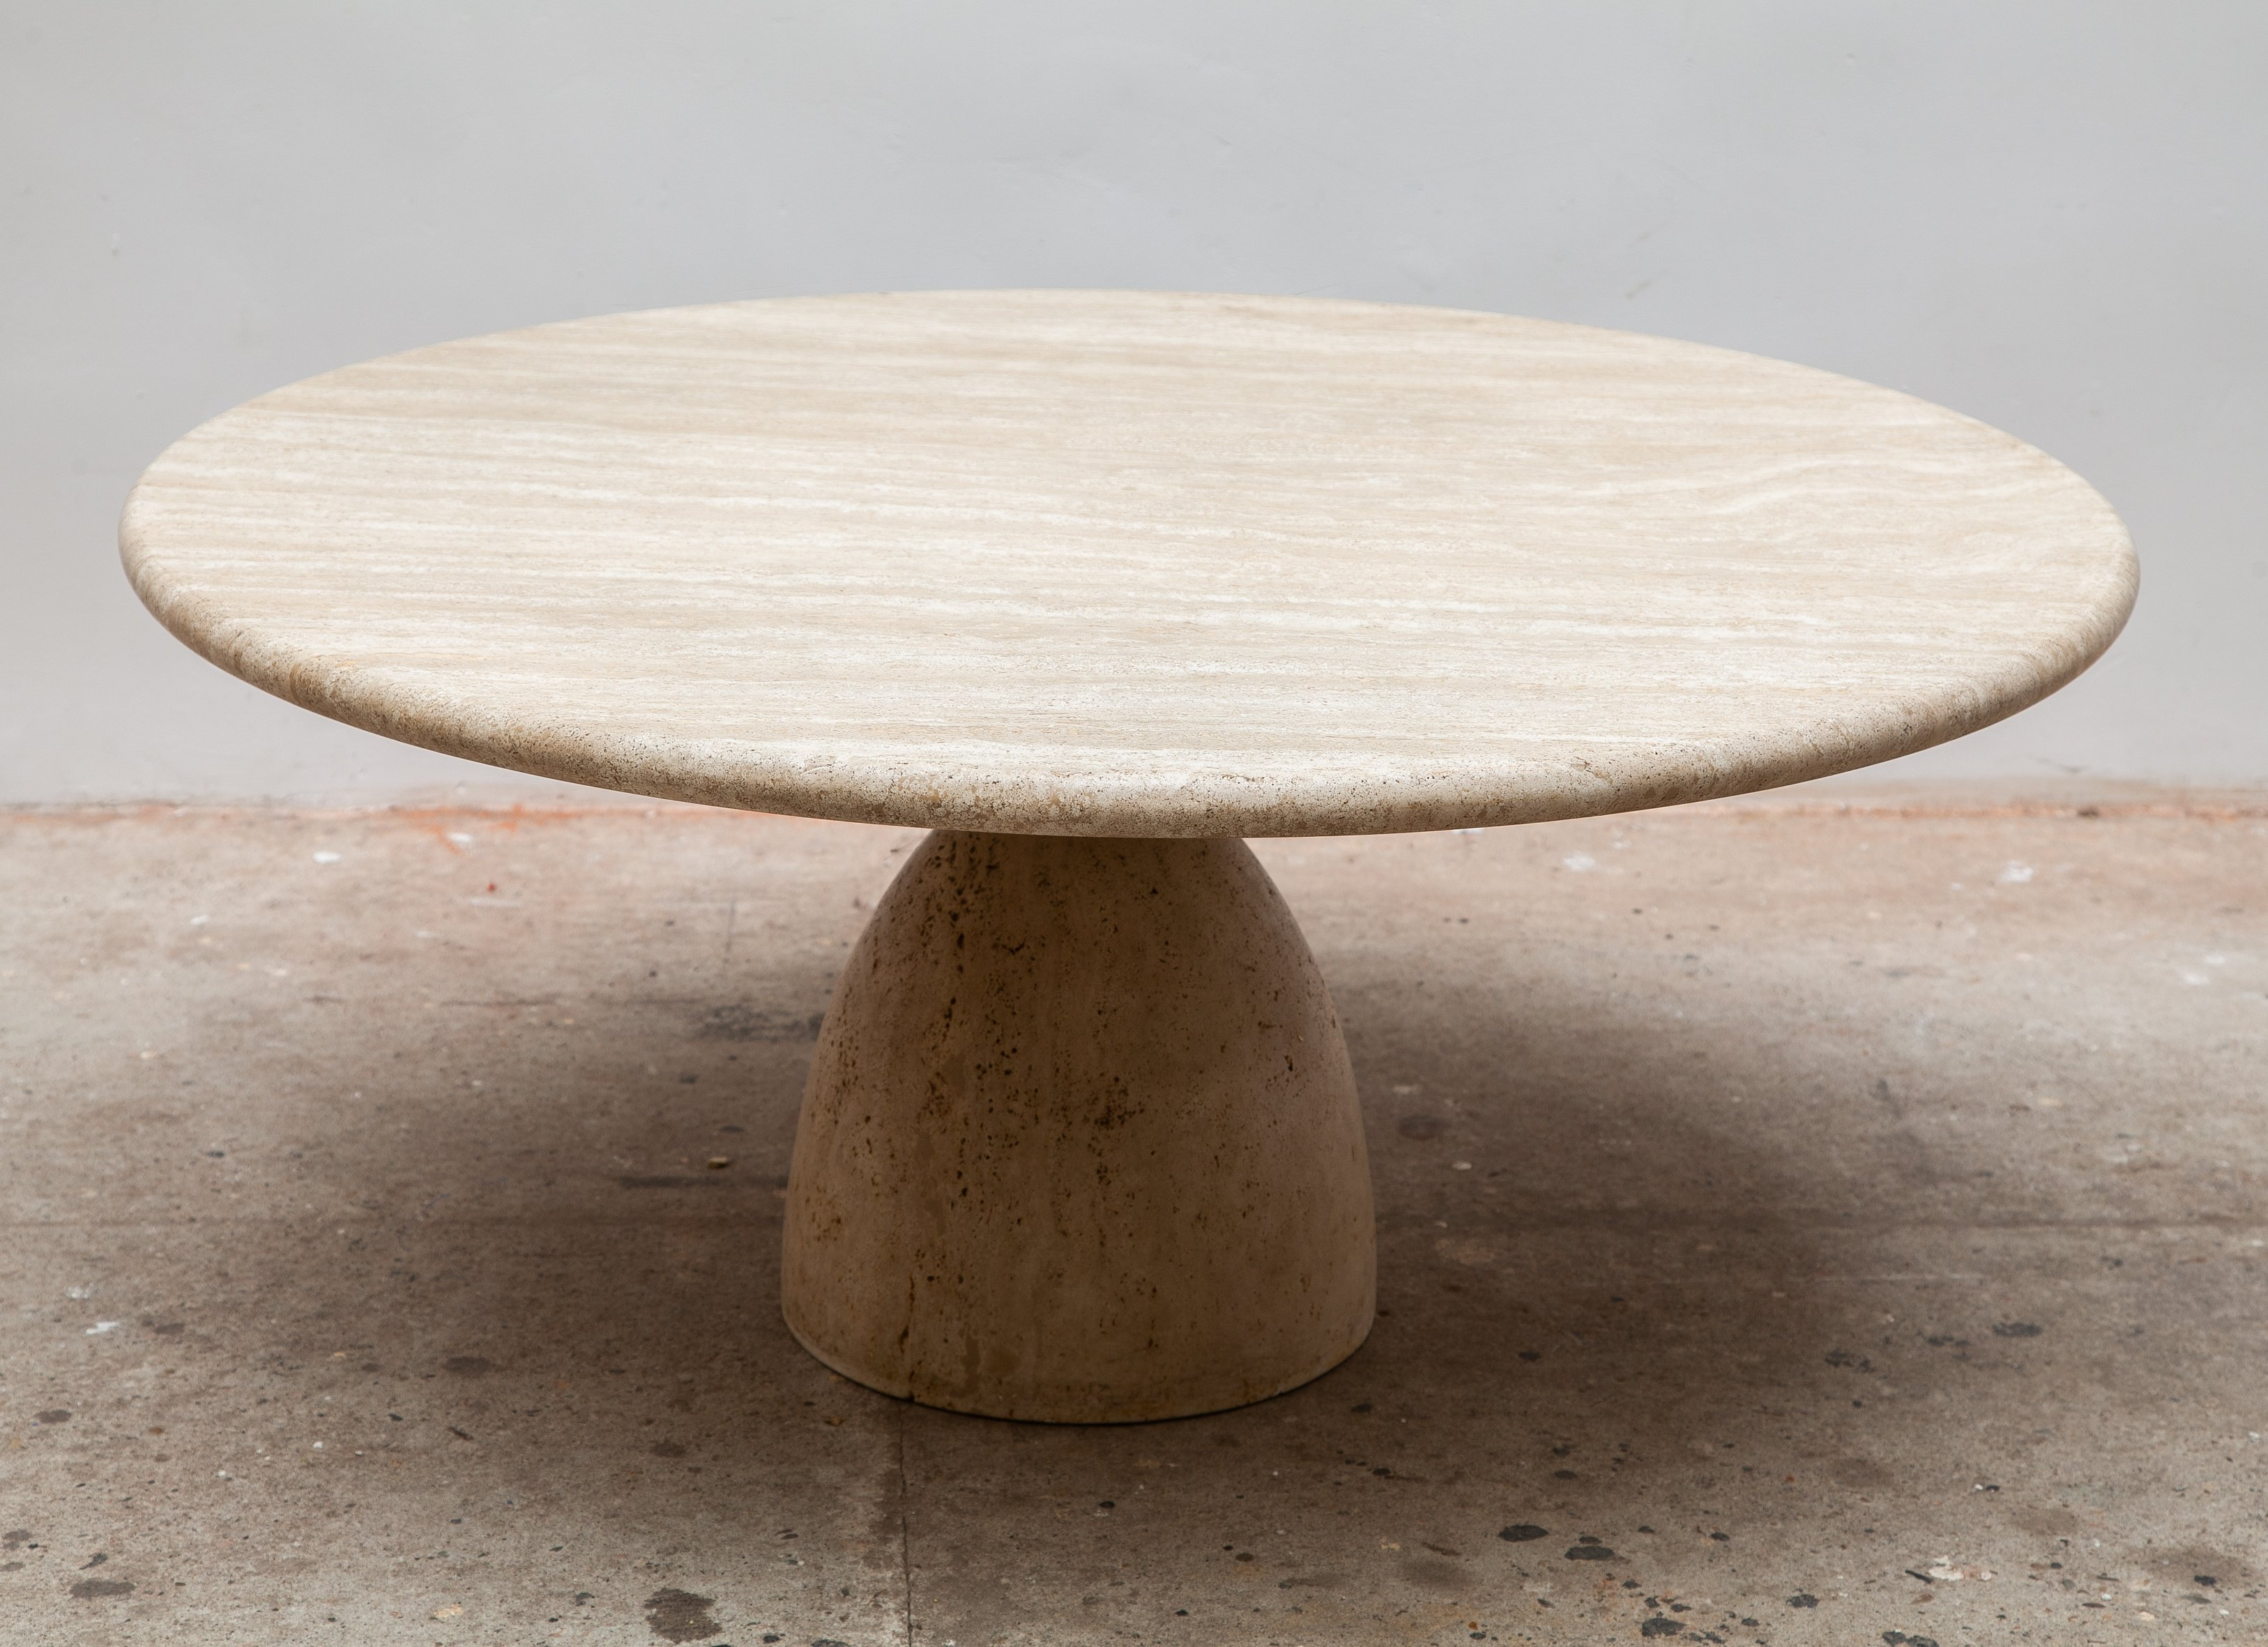 - Round Solid Travertine Pedestal Coffee Table By Peter Draenert